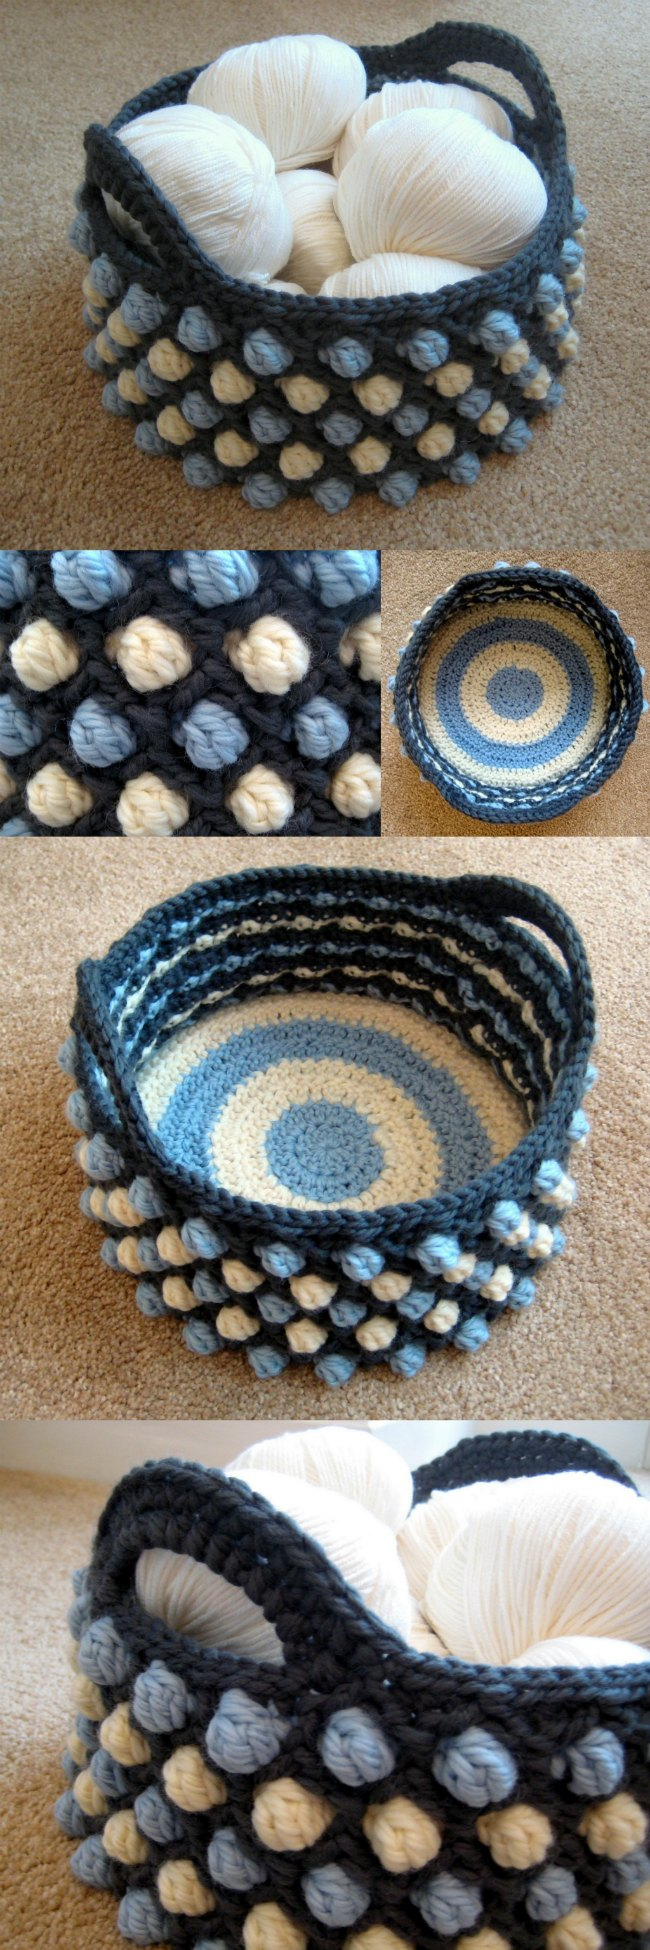 Honeycomb Basket Crochet Pattern, honeycomb pop basket